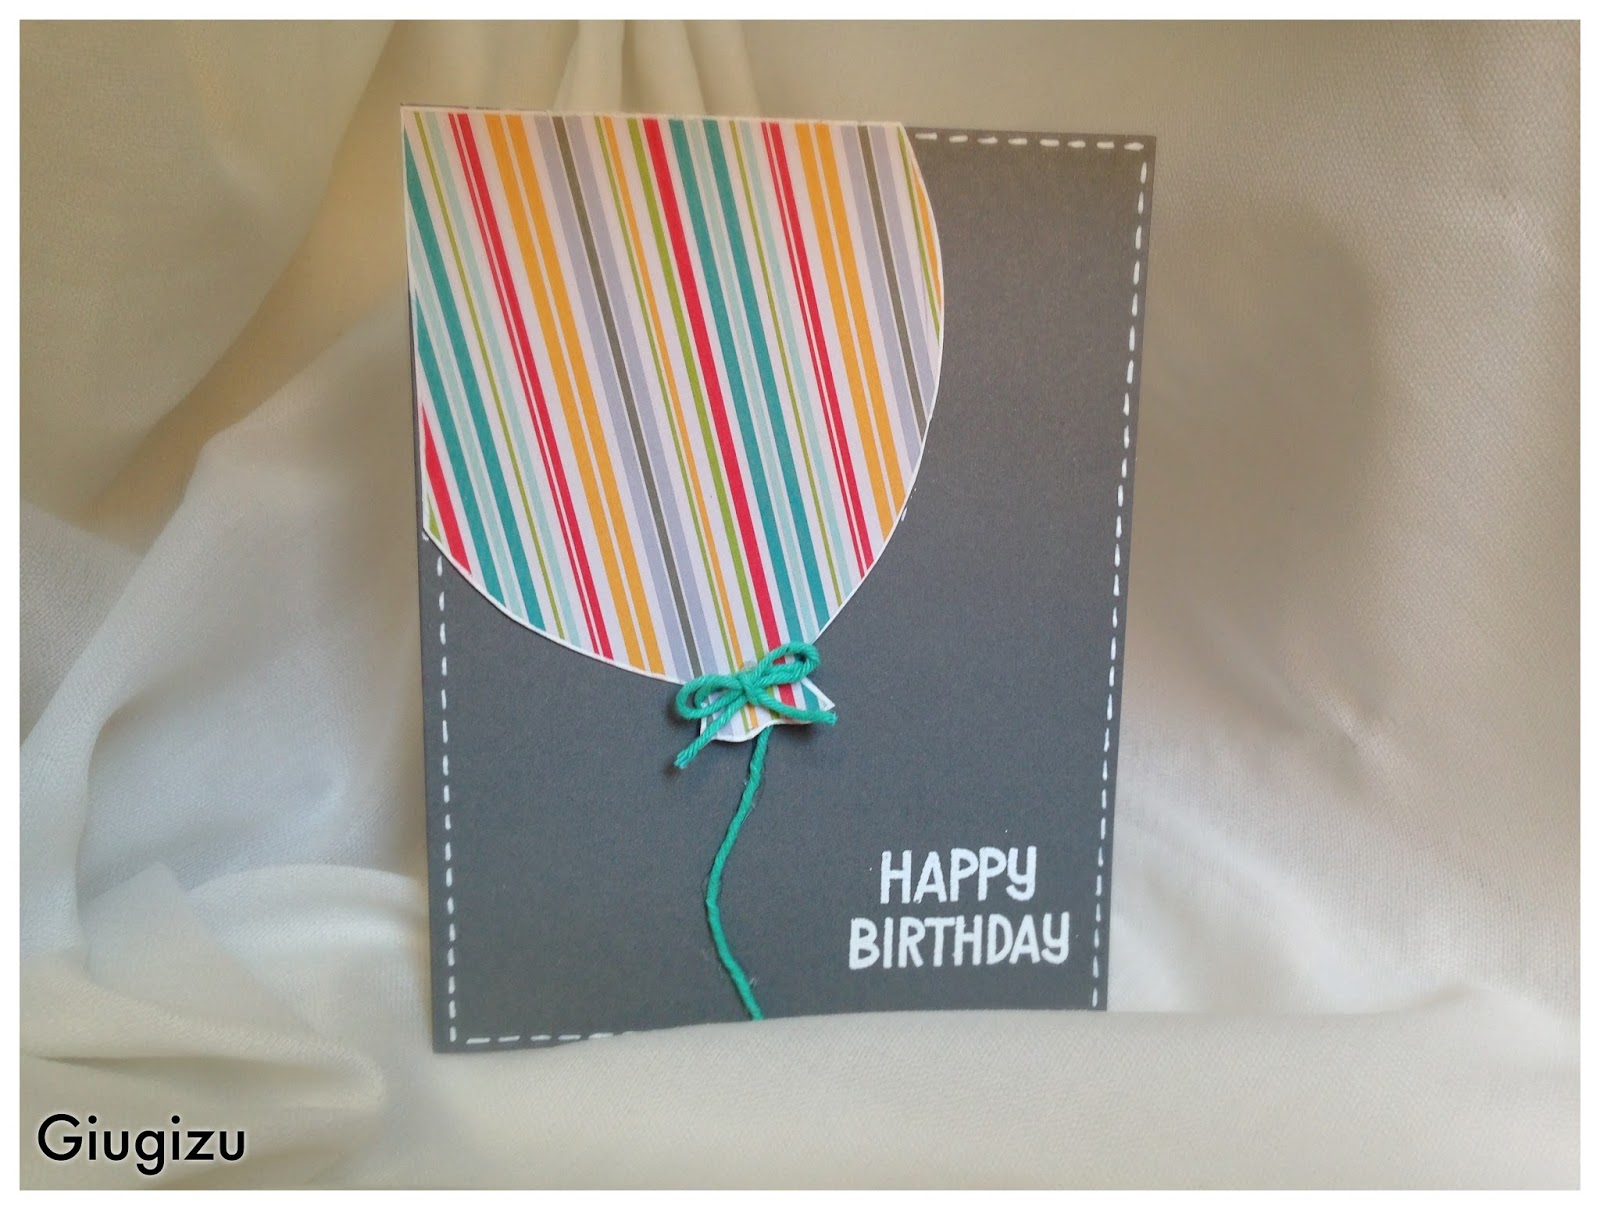 Fabuleux Giugizu's corner: Handmade Flying Balloon birthday card  EI01